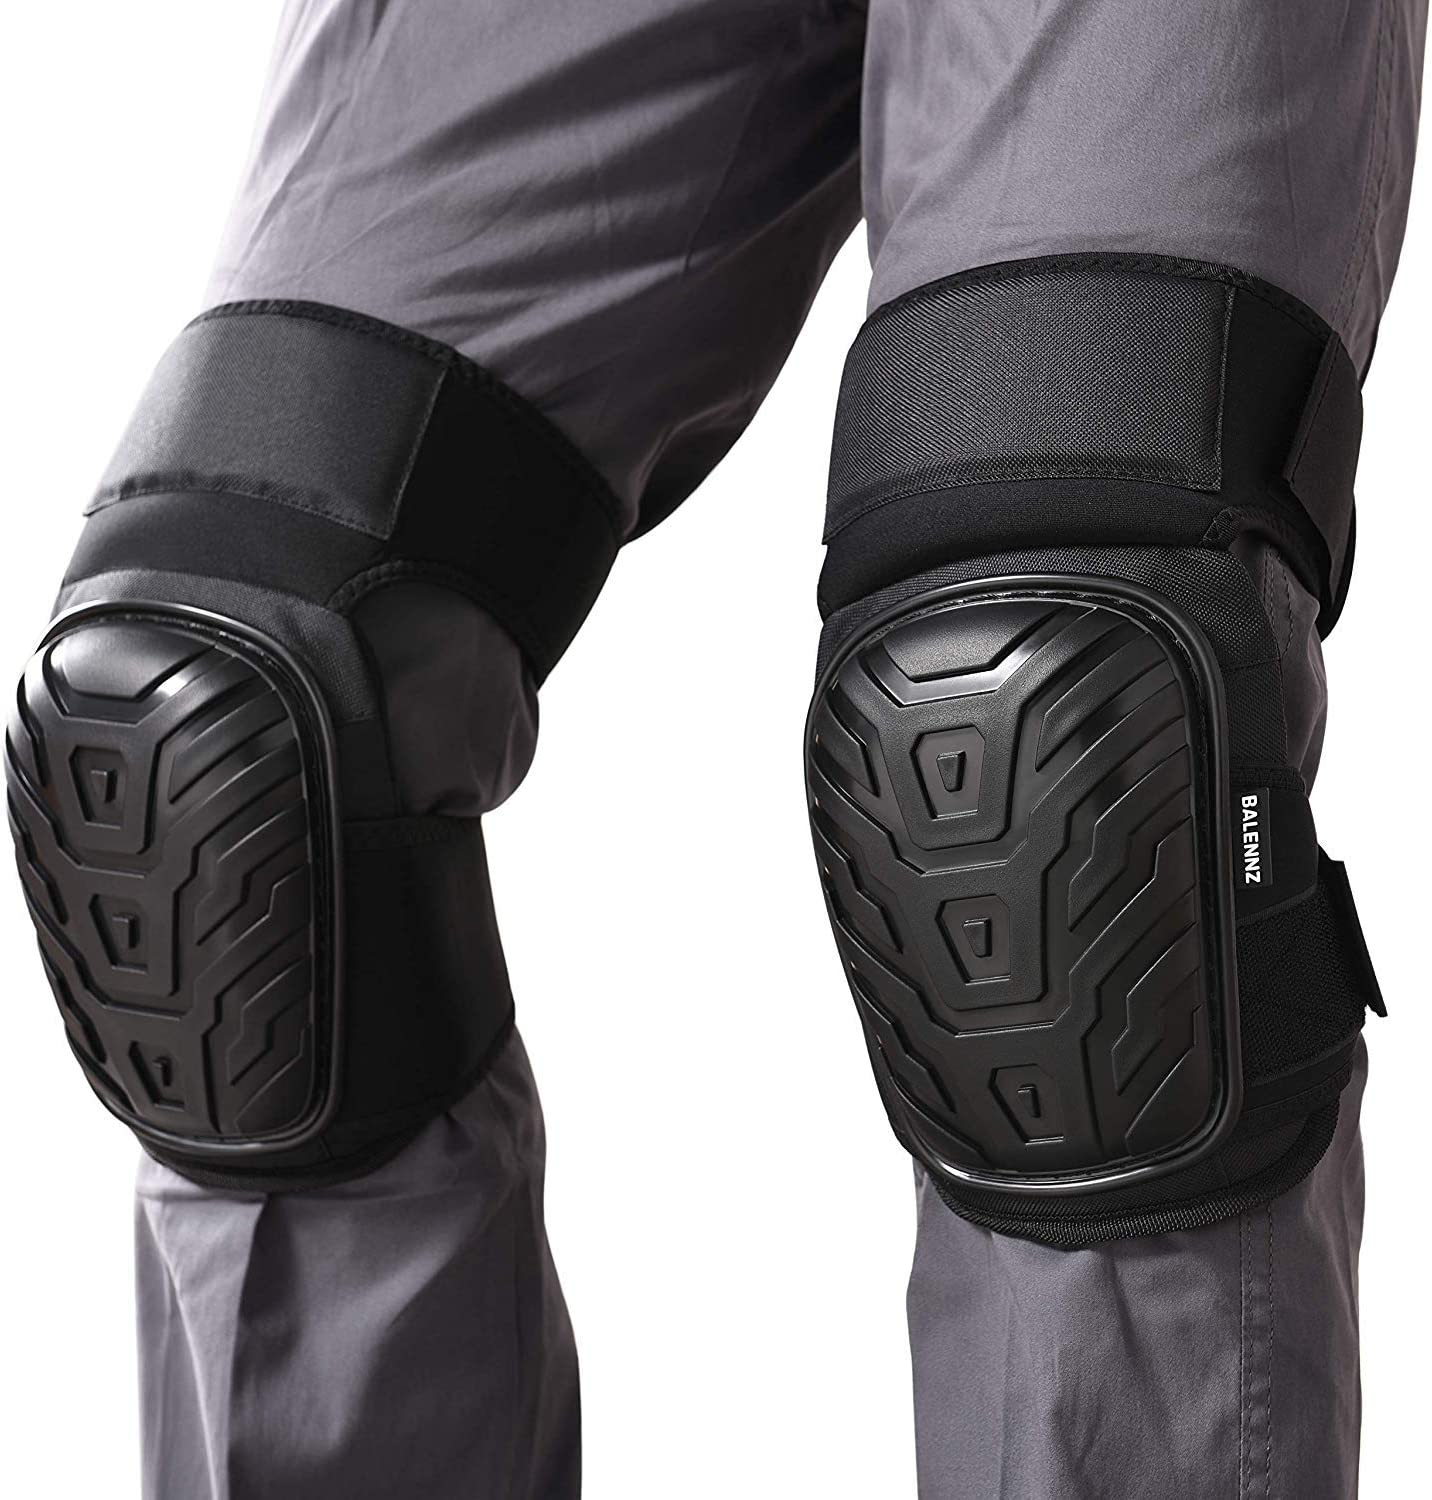 Professional Knee Pads with Heavy Duty Foam Padding and Comfortable Gel Cushion